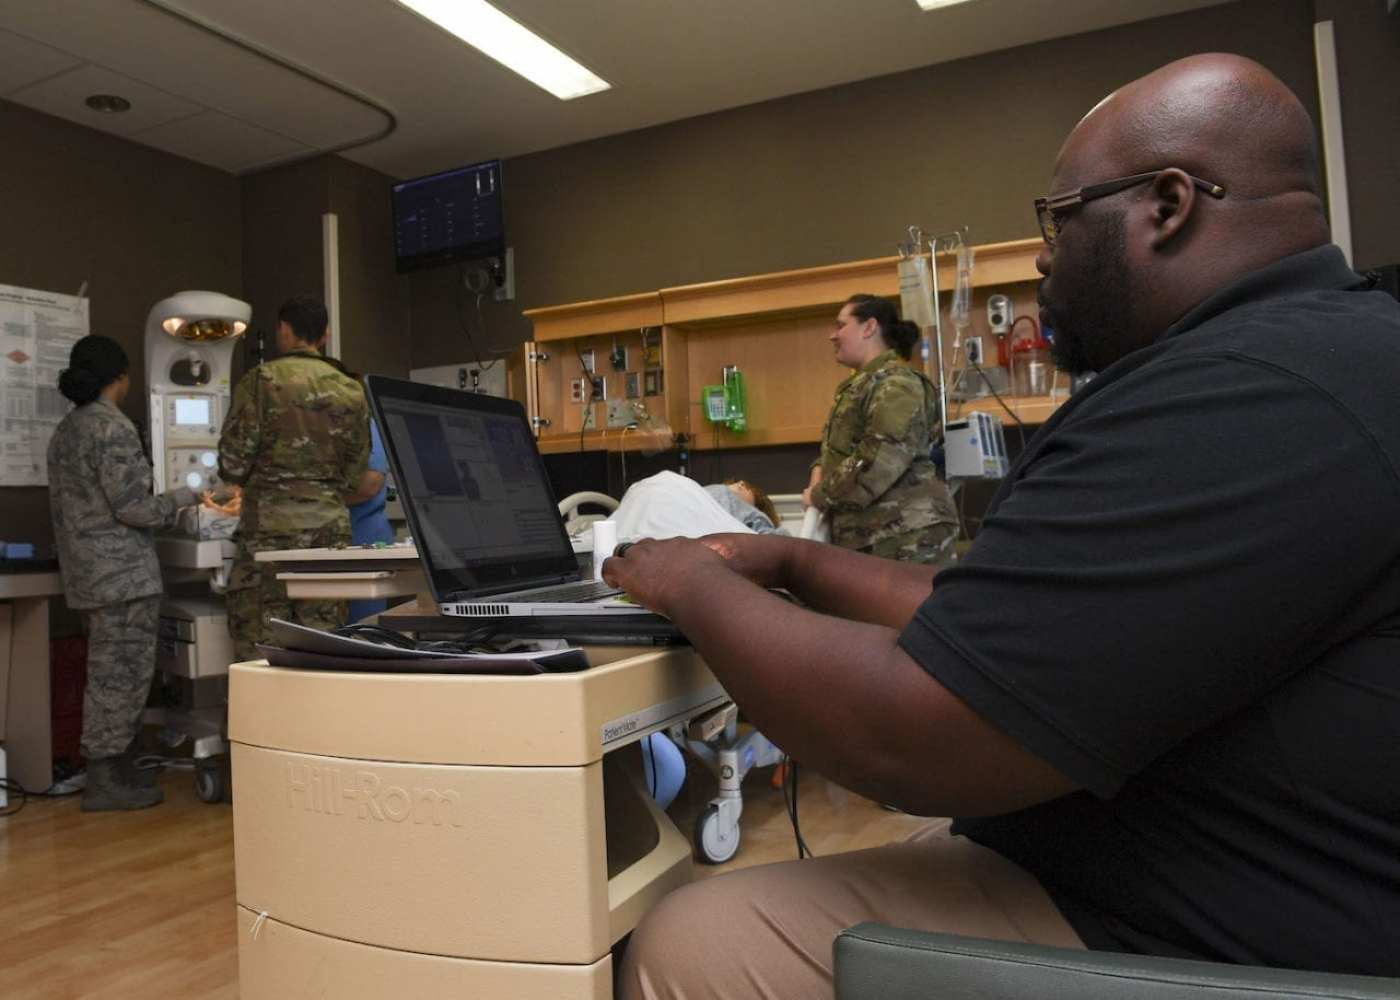 Raymond Jernigan, 633rd Medical Group simulator operator, sets the vitals for a Neonatal Resuscitation Program certification training, July 10, 2019, at Joint Base Langley-Eustis, Virginia. PHOTO DETAILS / DOWNLOAD HI-RES 3 of 3 Raymond Jernigan, 633rd Medical Group simulator operator, sets the vitals for a neonatal resuscitation program certification training, July 10, 2019, at Joint Base Langley-Eustis, Va. Simulator operator can set the heart rate, blood pressure, pulse, etc. (U.S. Air Force photo by Airman 1st Class Alexandra Singer)